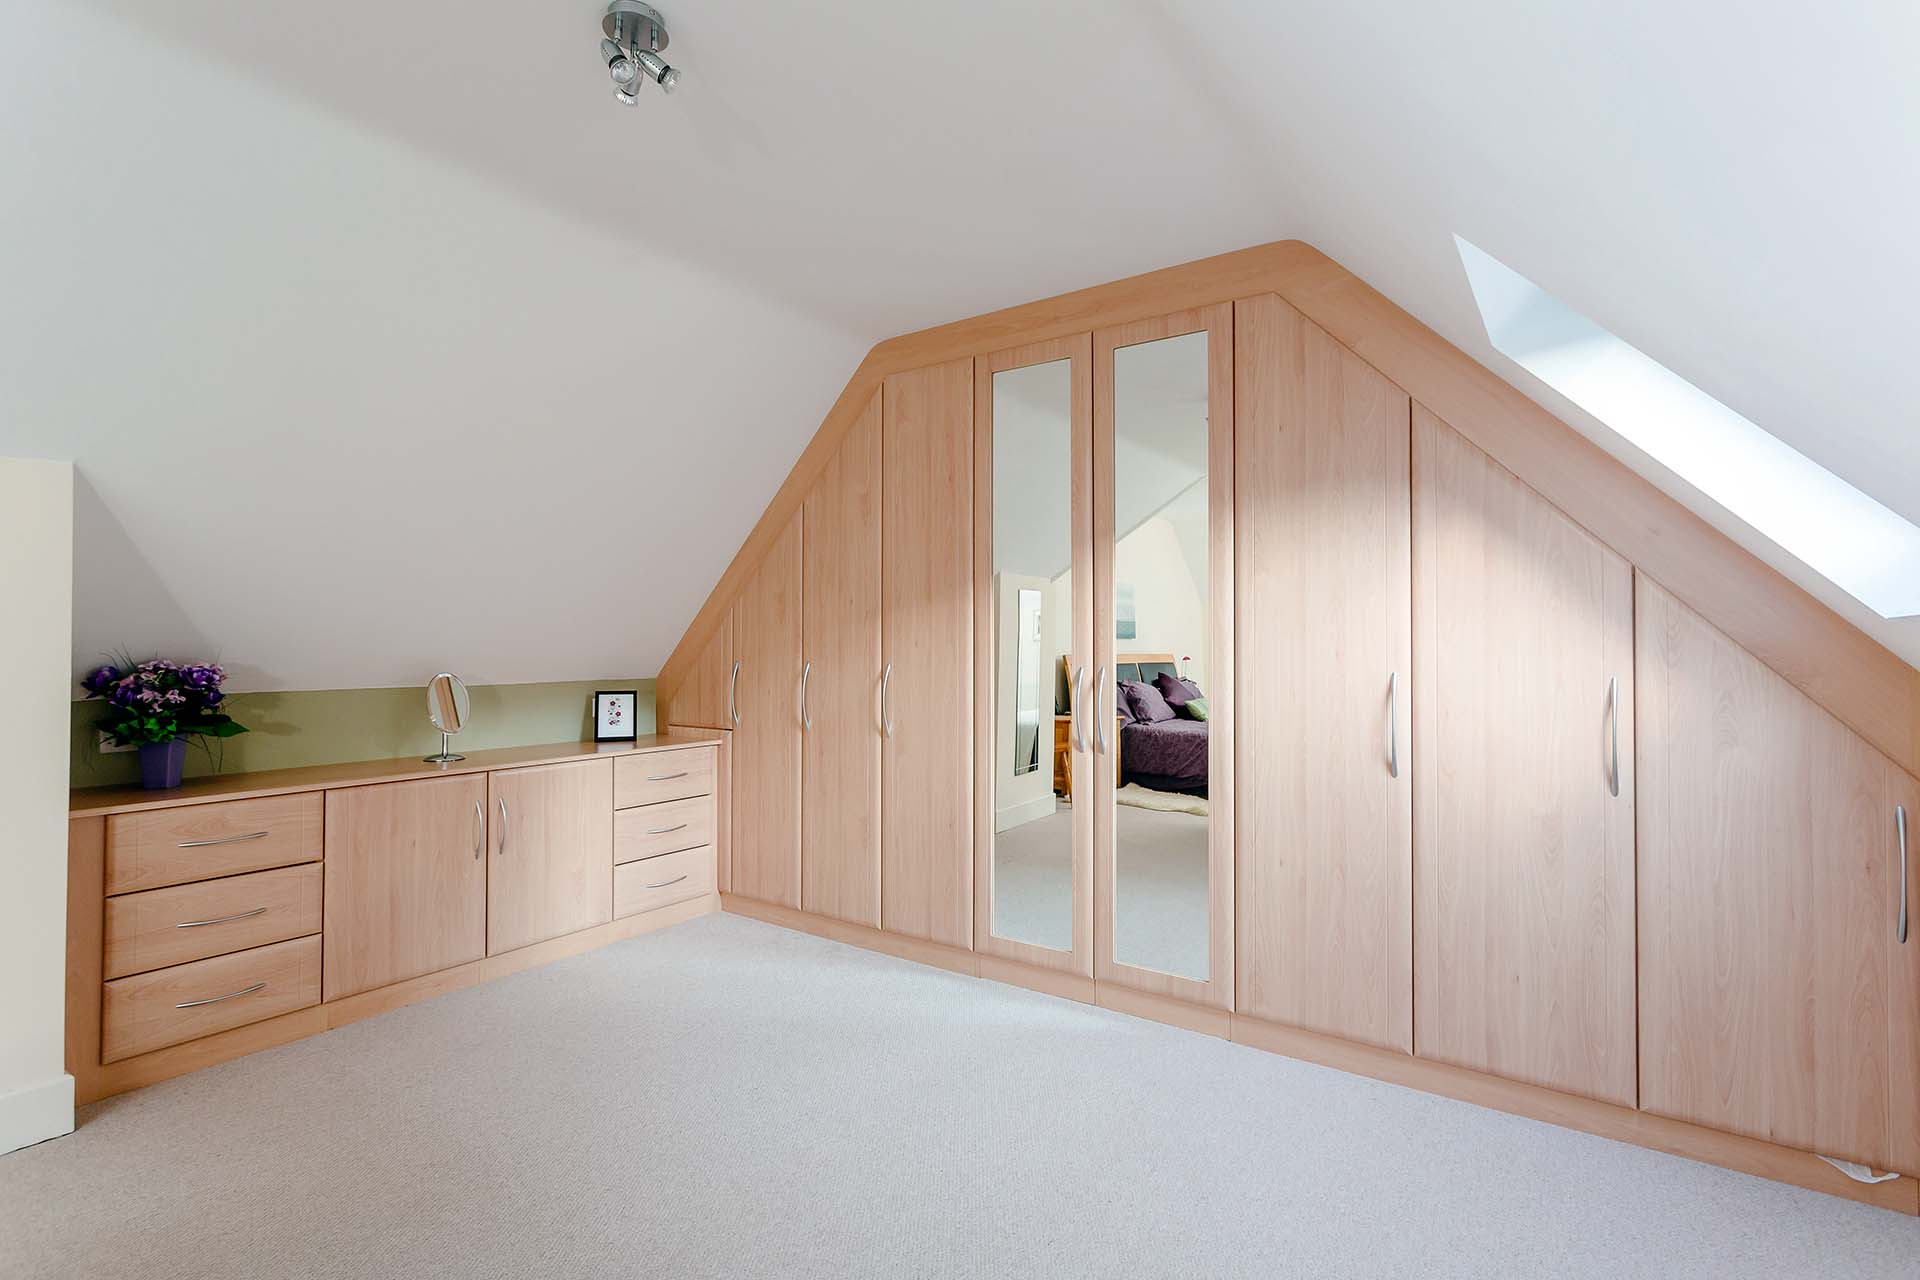 Wall To Wall Wardrobes Fitted Furniture Weymouth And Portland Custom World Bedrooms